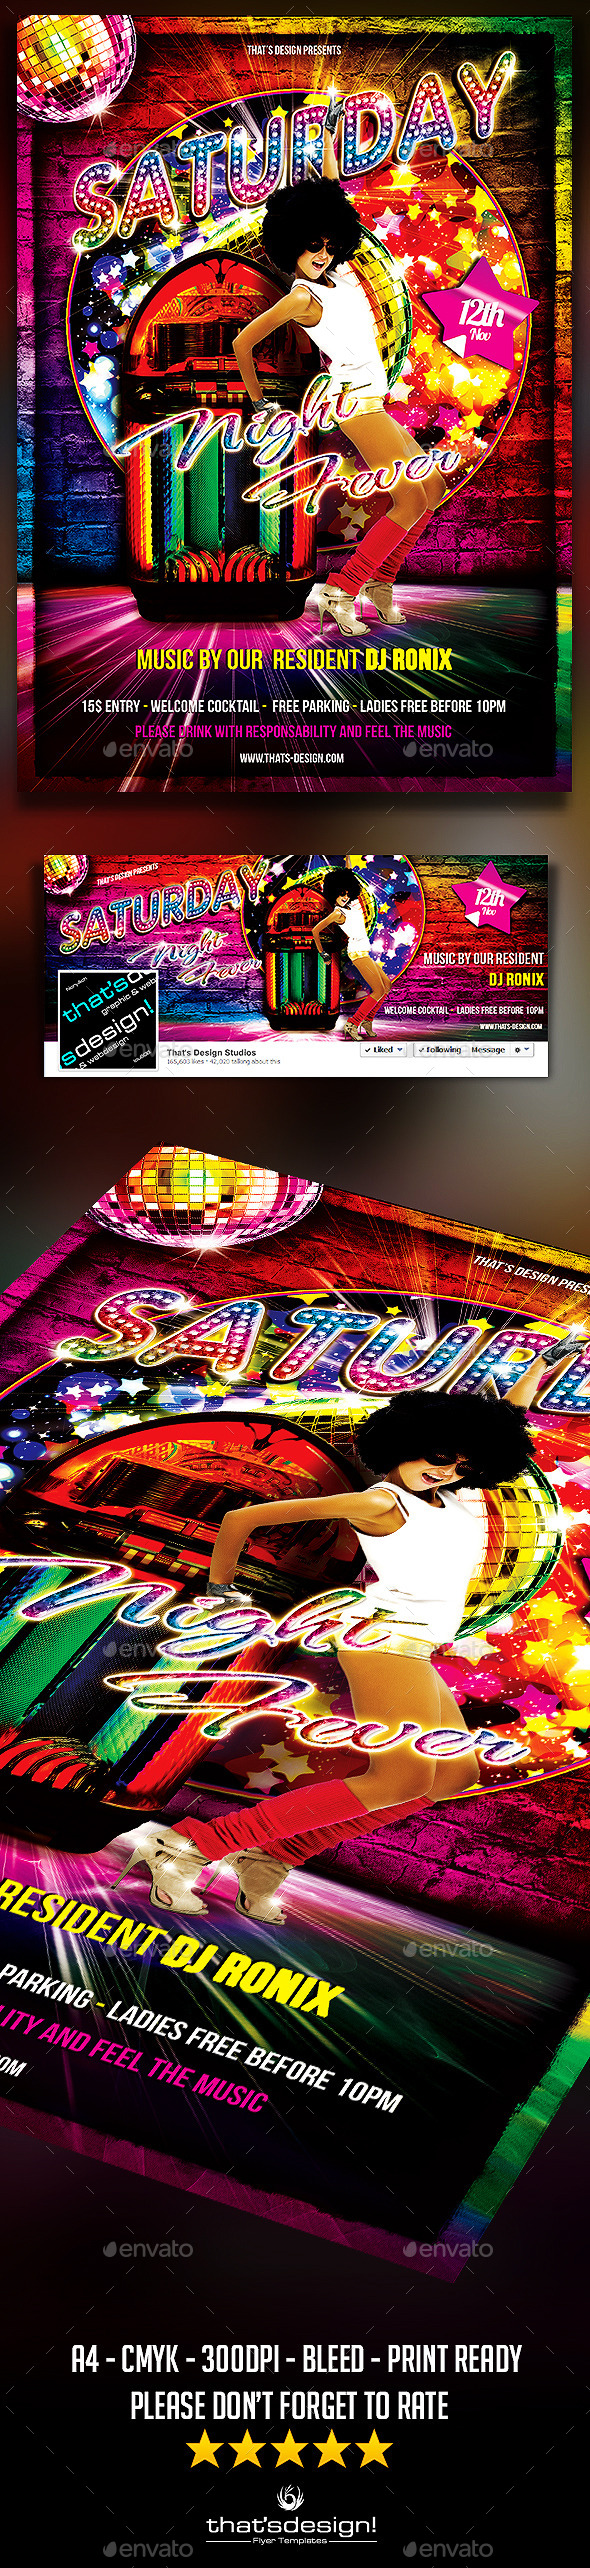 Saturday Night Fever Flyer Template - Clubs & Parties Events